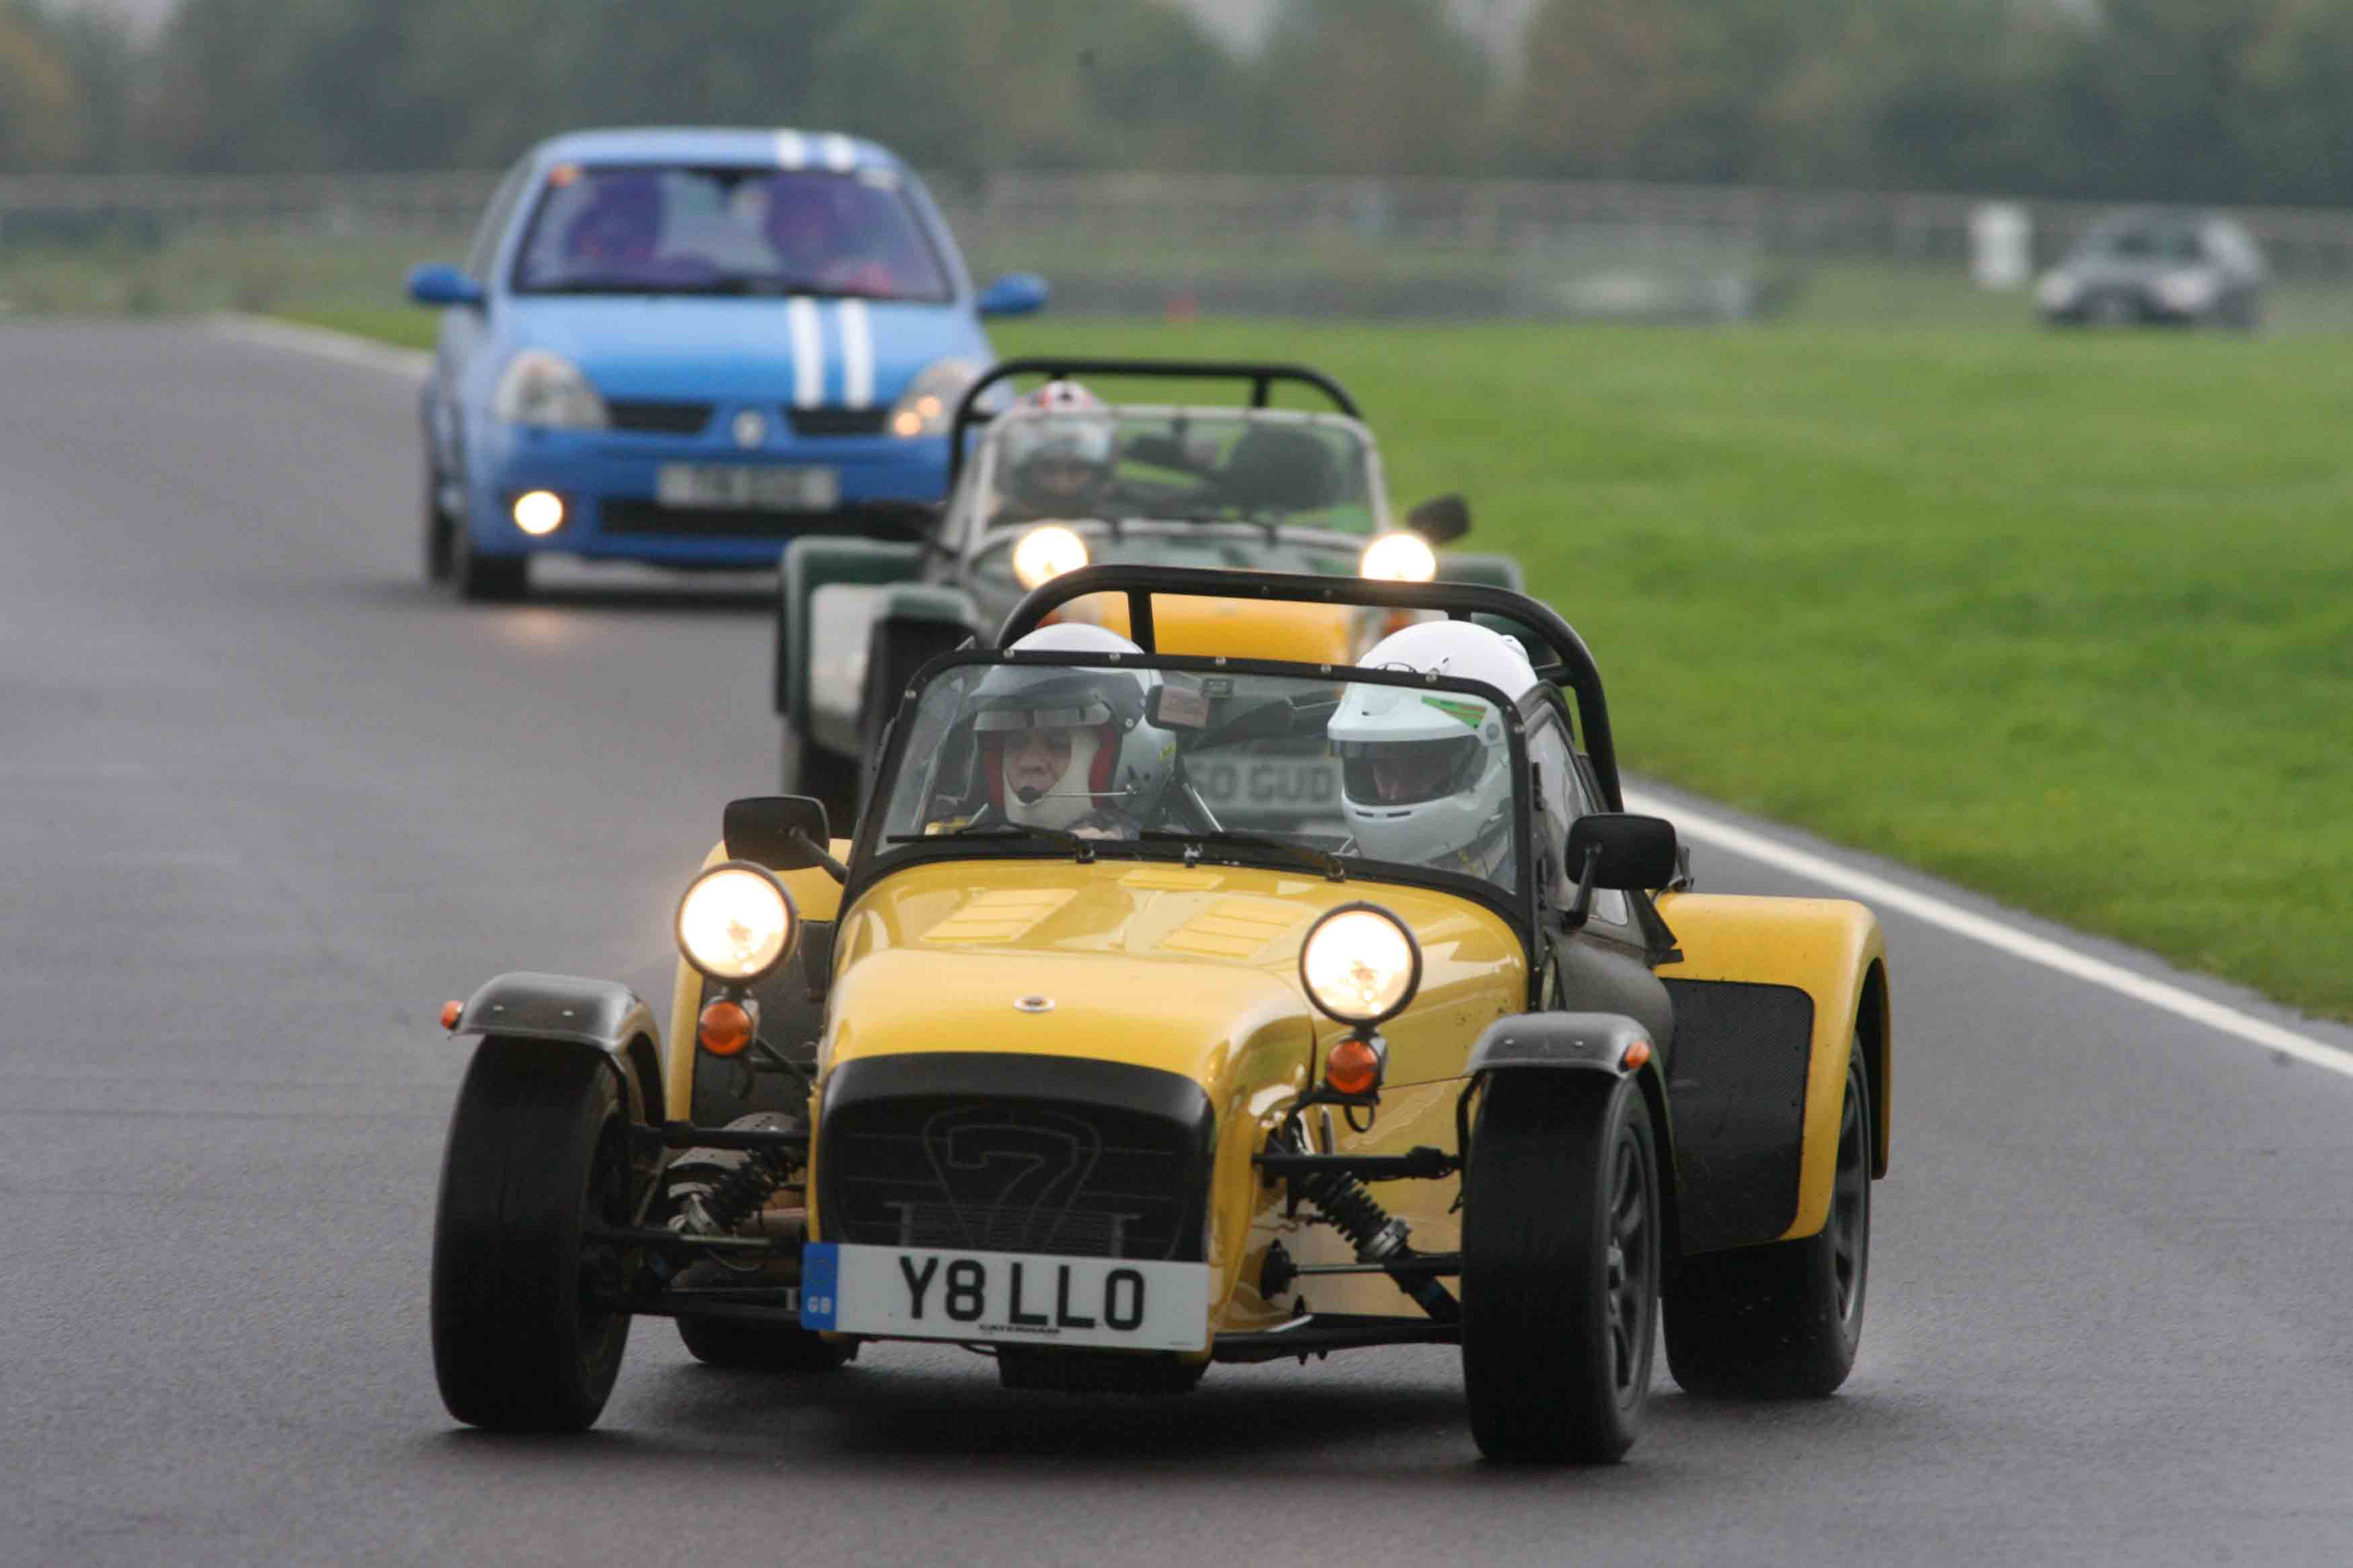 Castle be 25th September 2017 BHP TrackDays at Castle be Circuit